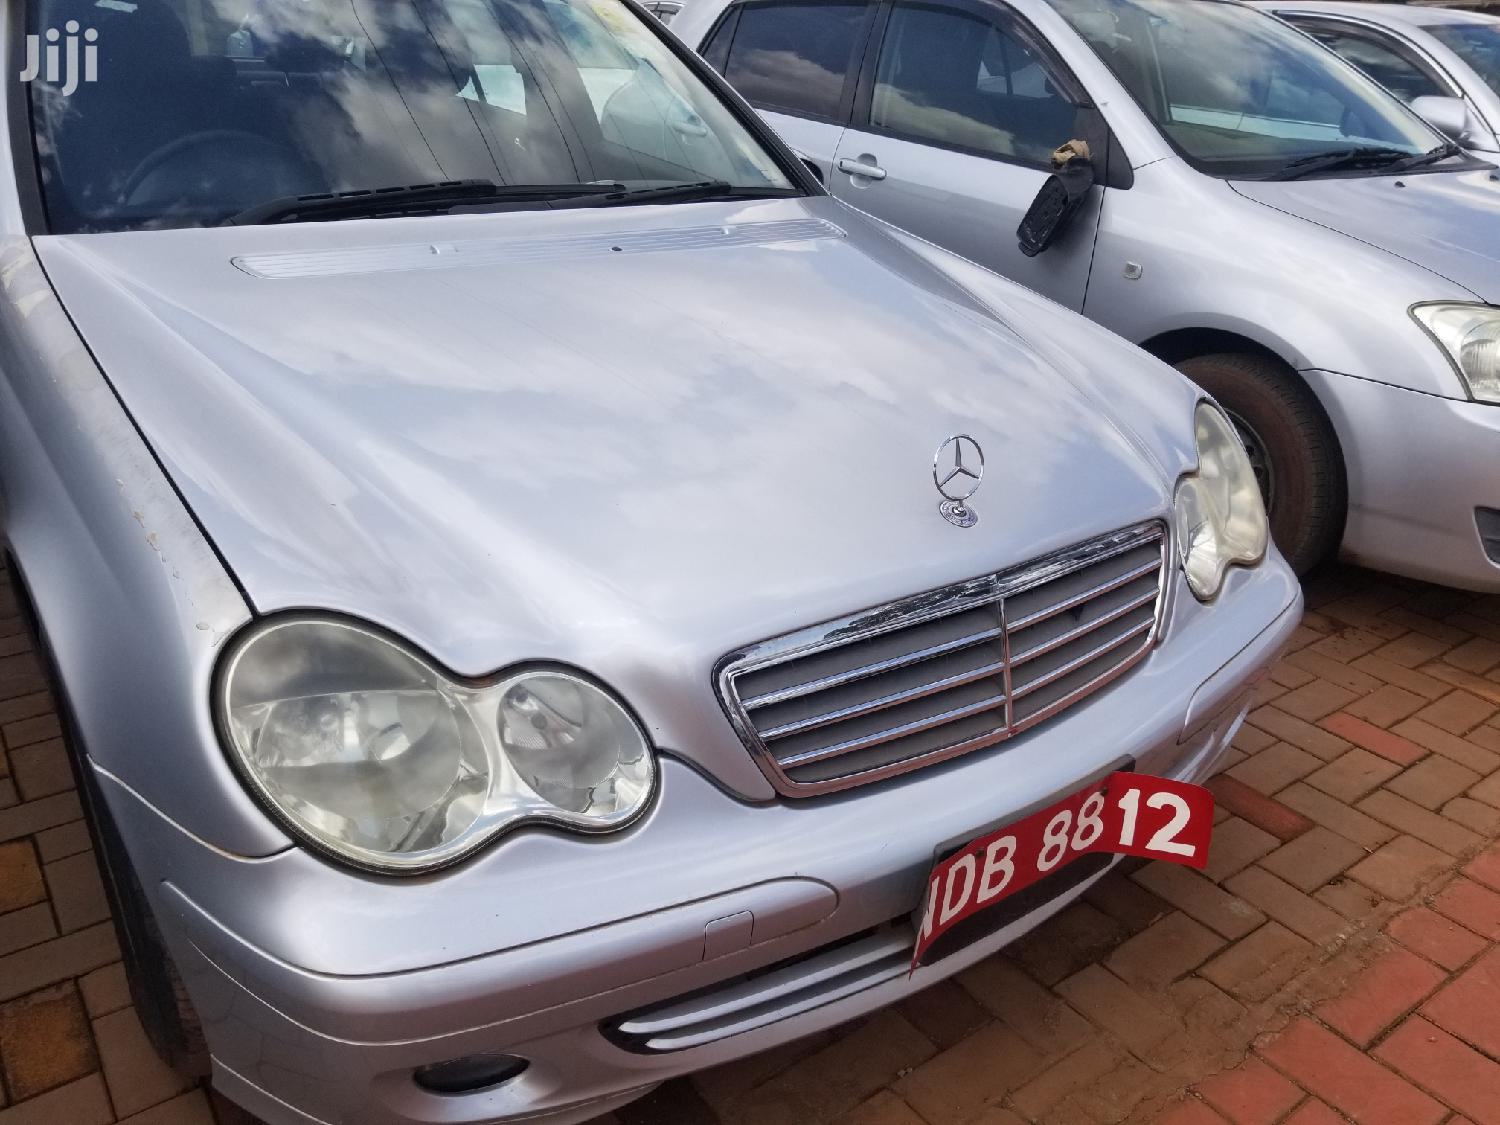 Archive: New Mercedes-Benz C180 2008 Silver